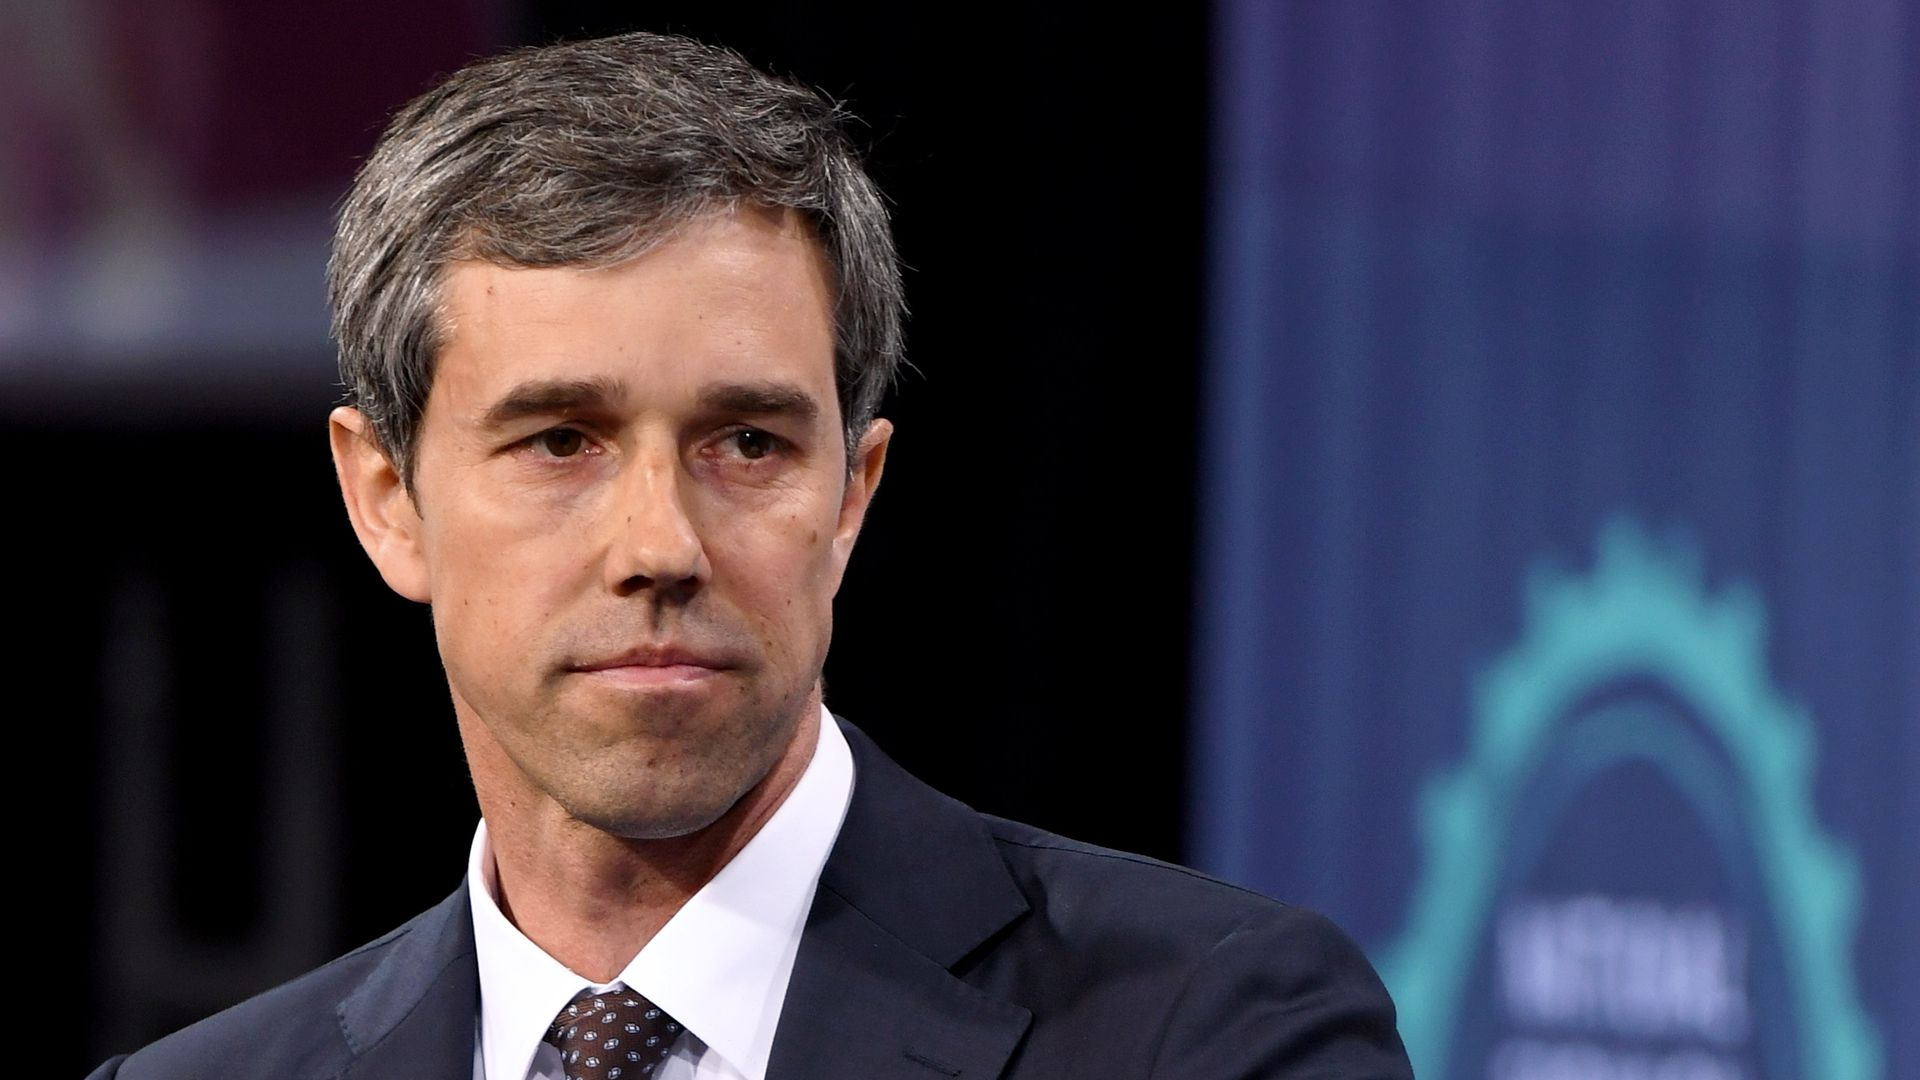 Democratic presidential candidate Beto O'Rourke at the National Forum on Wages and Working People: Creating an Economy That Works for All at Enclave on April 27, 2019 in Las Vegas, Nevada